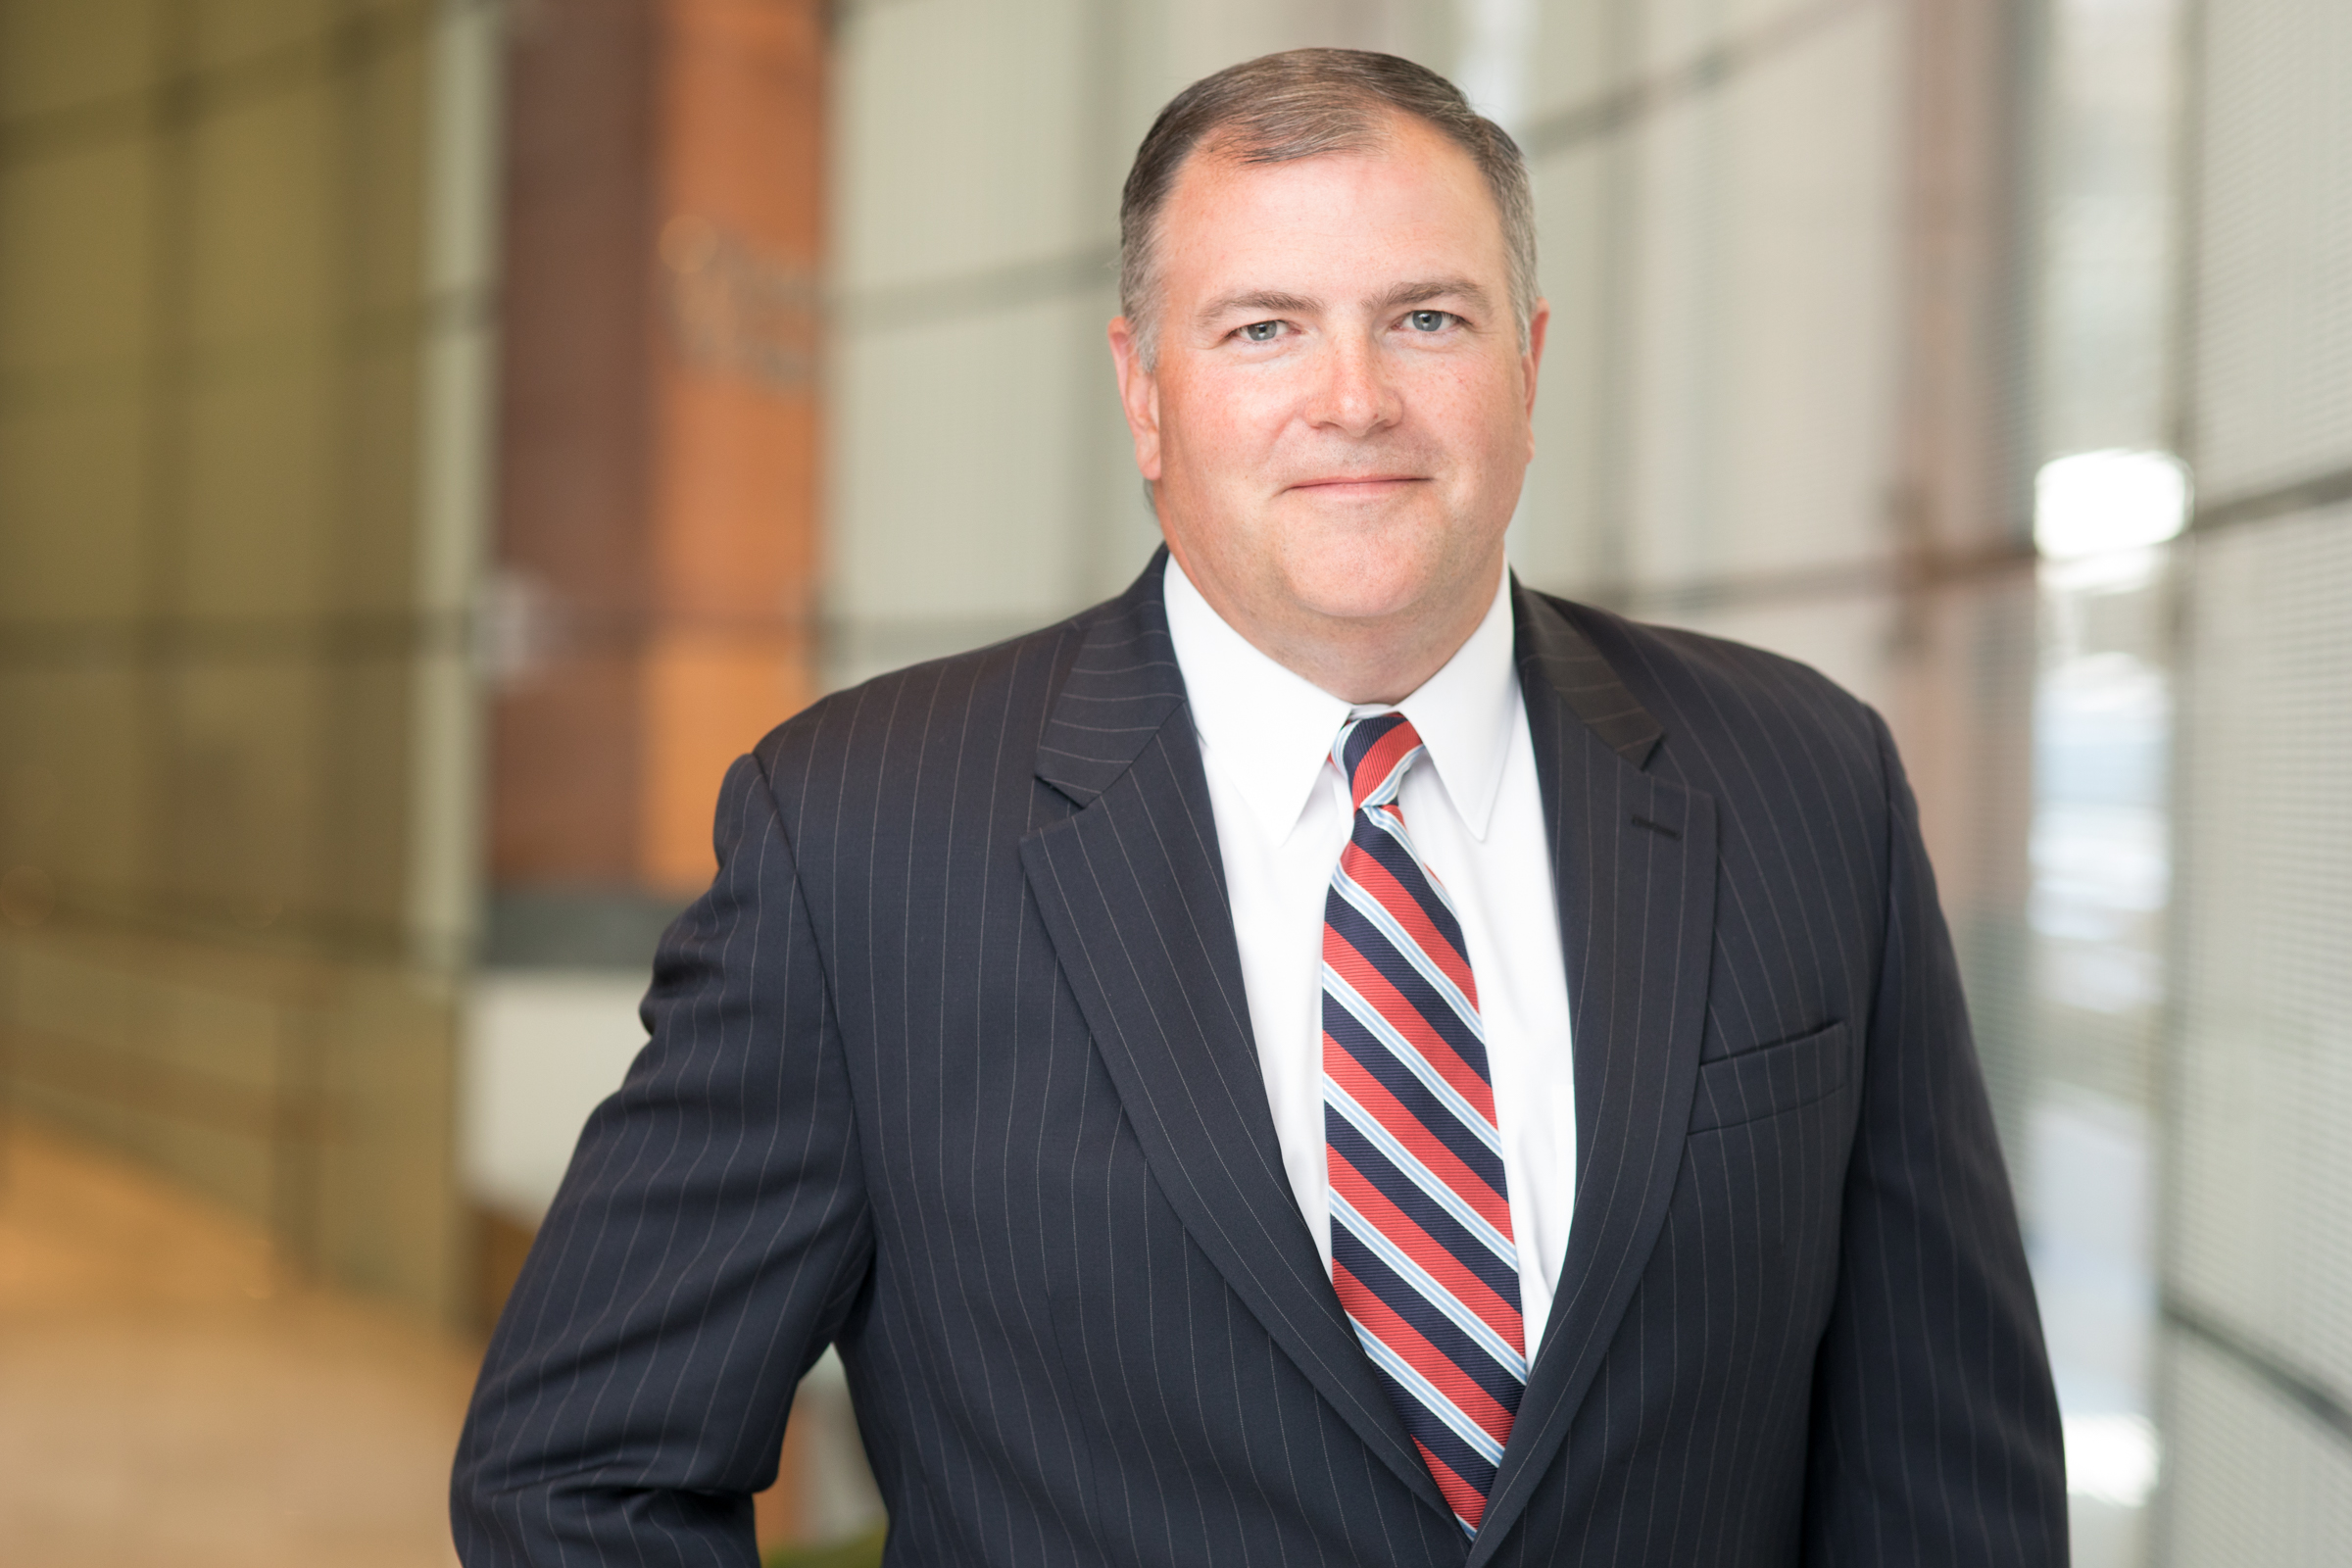 Shaun Martin - Shaun has held executive officer positions within industry- and advised-boards, management teams, and creditors of financially and operationally distressed companies across multiple industries. He has managed all aspects of the financial restructuring process.